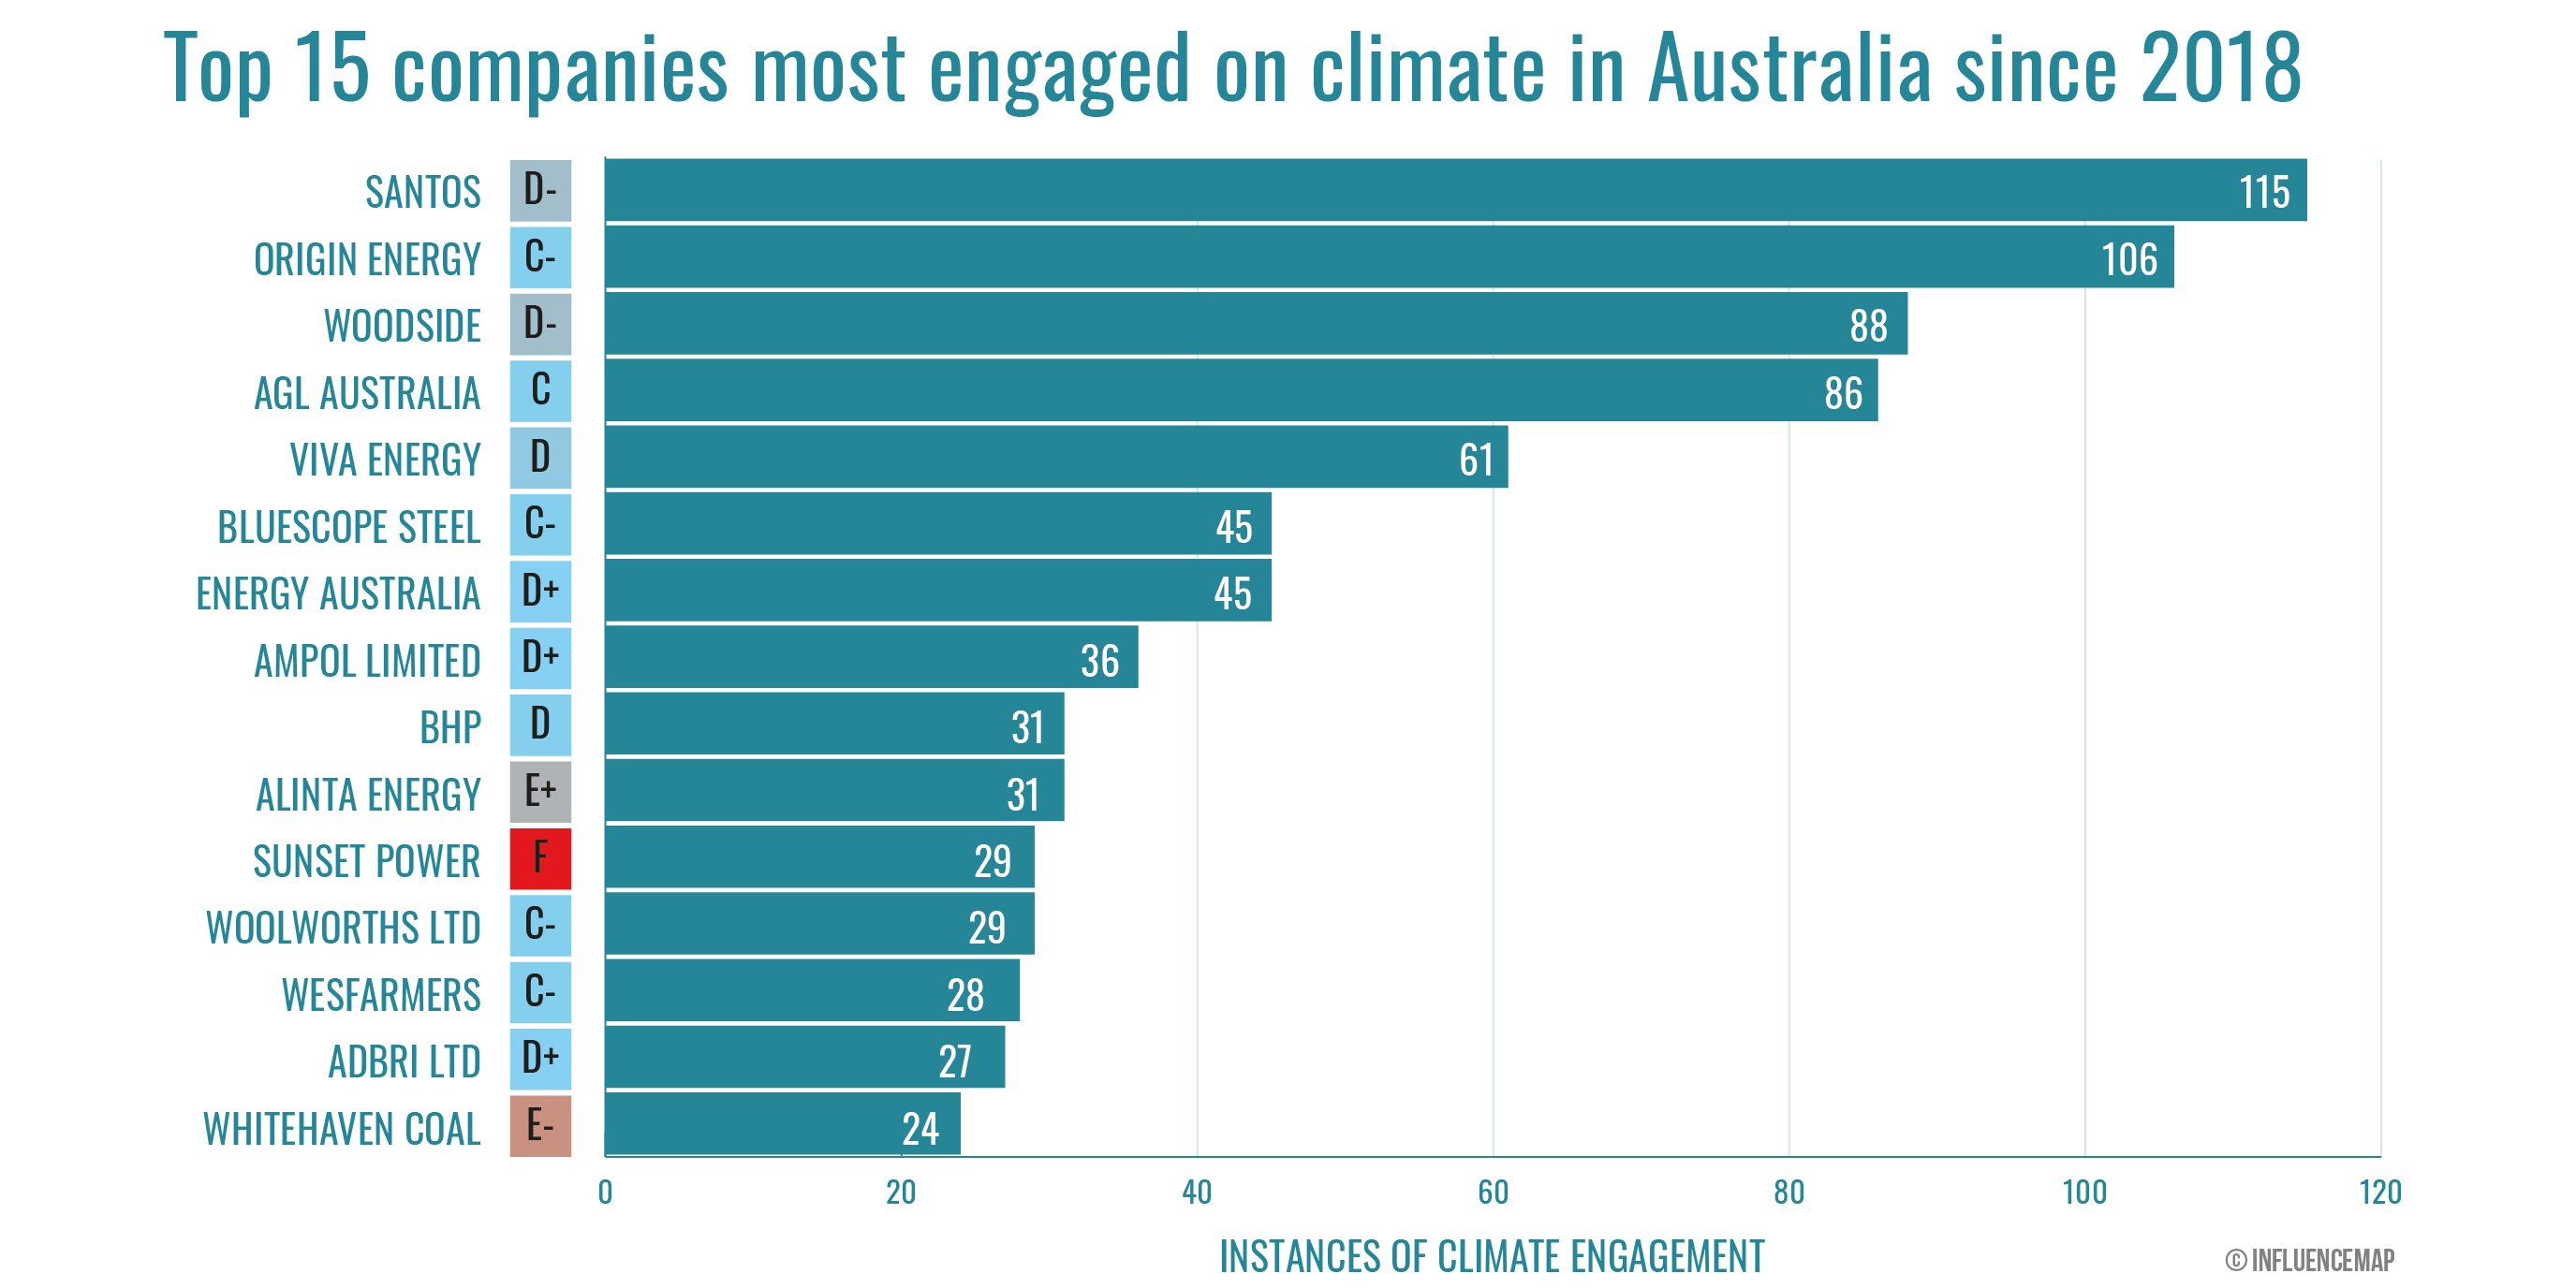 A chart shows the 15 most 'engaged' lobbyists on climate change. Santos, Origin Energy and Woodside top the list.